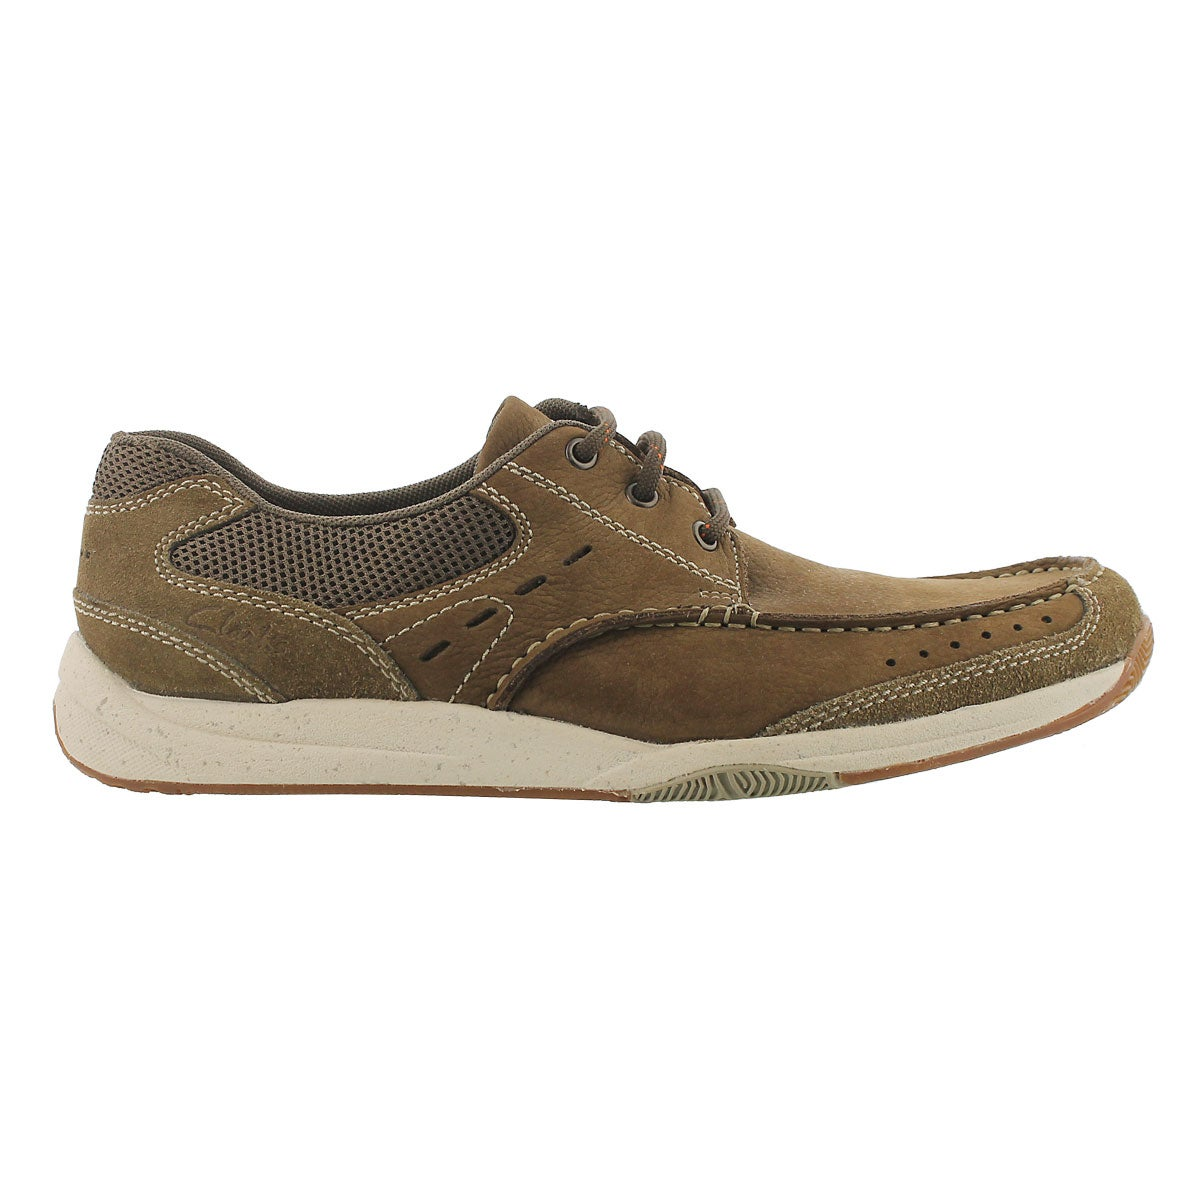 Mns Edge olive lace up casual shoe